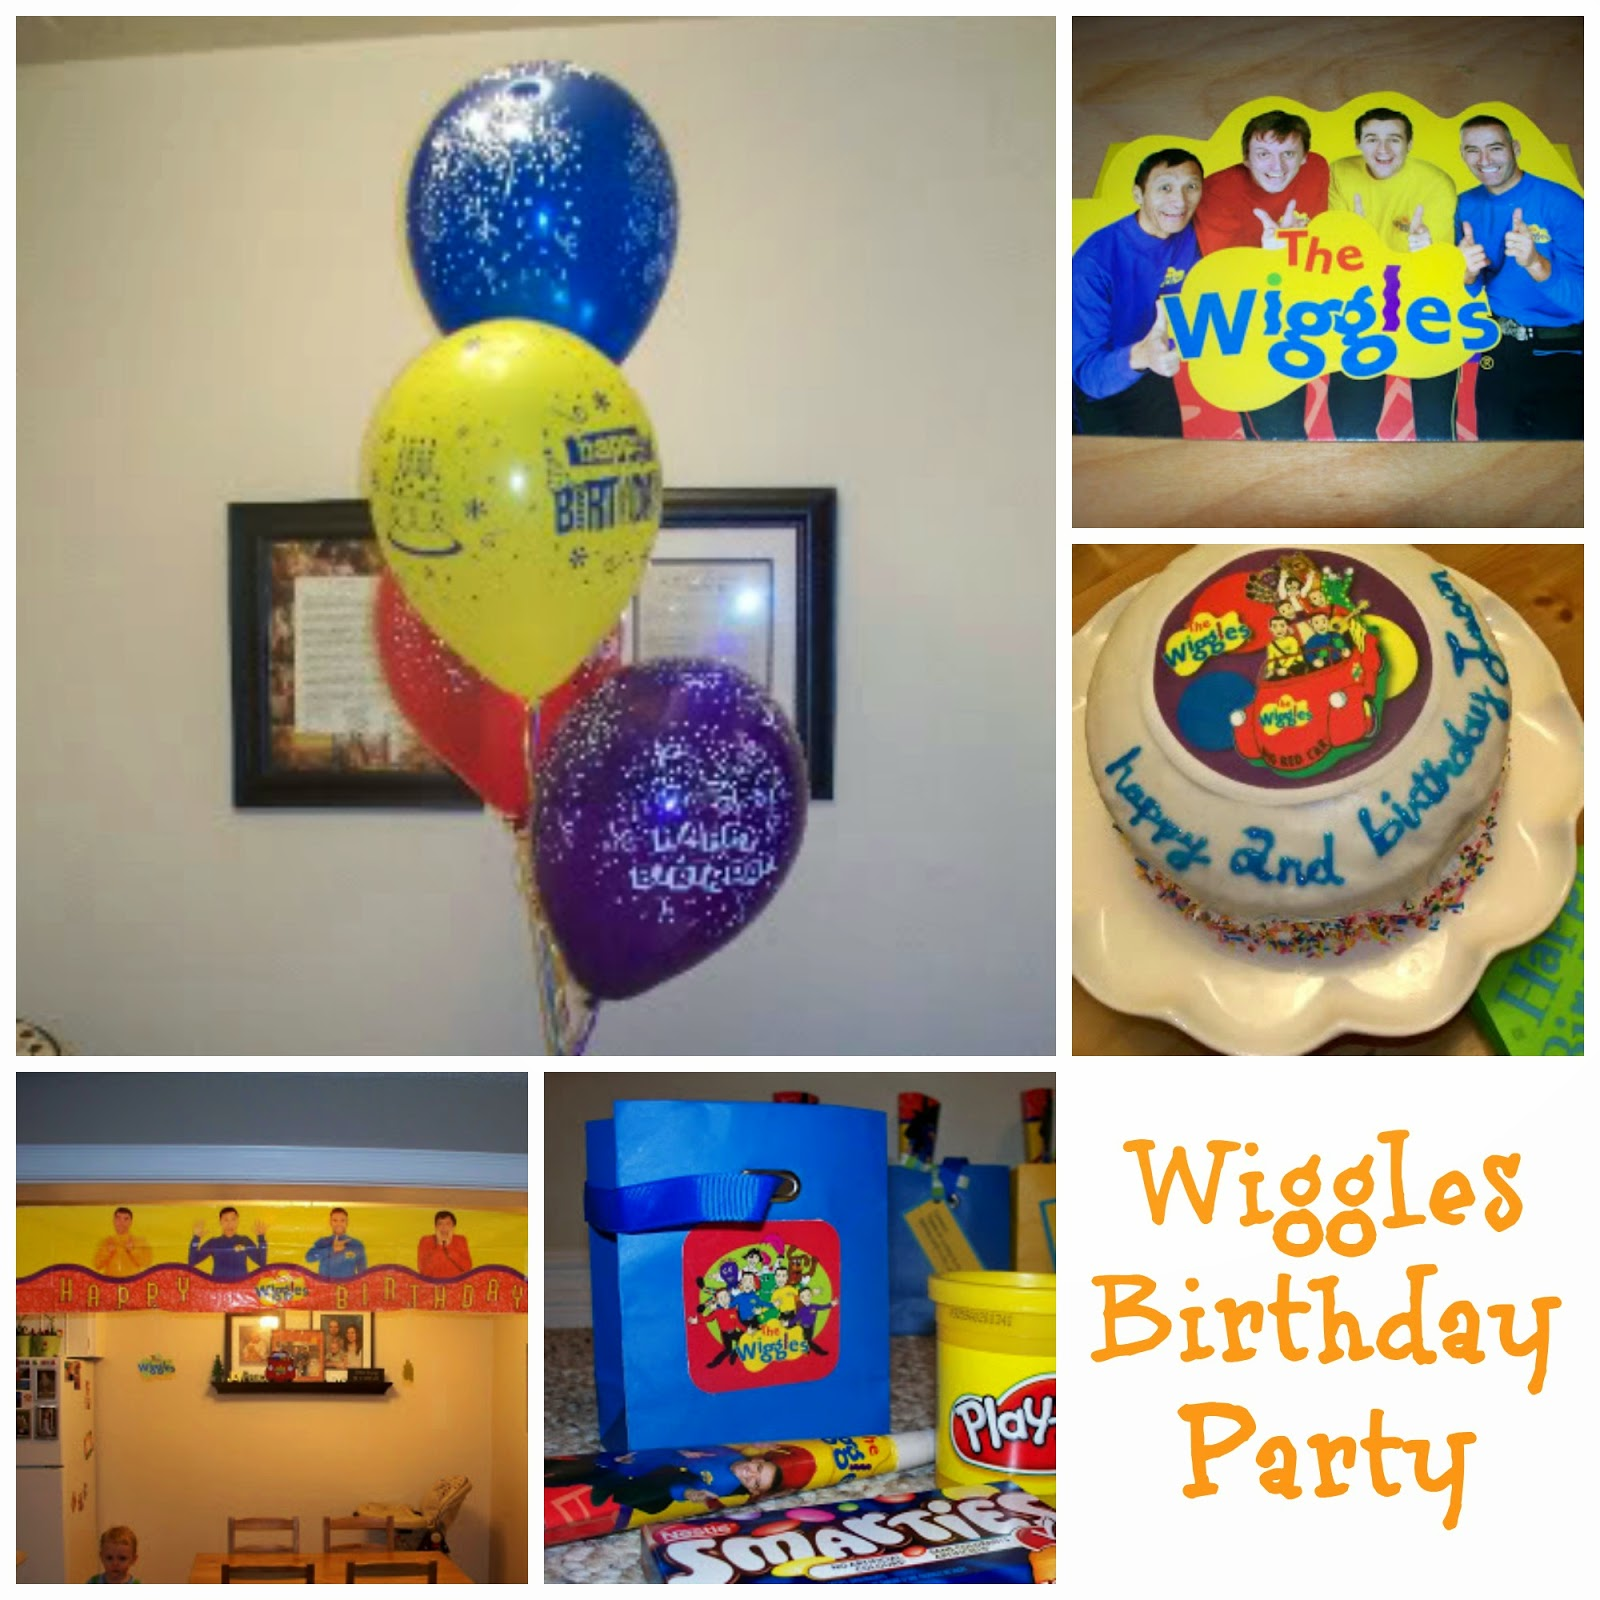 http://craftingandcreativity.blogspot.ca/2011/05/boys-2nd-birthday-party-wiggles-theme.html